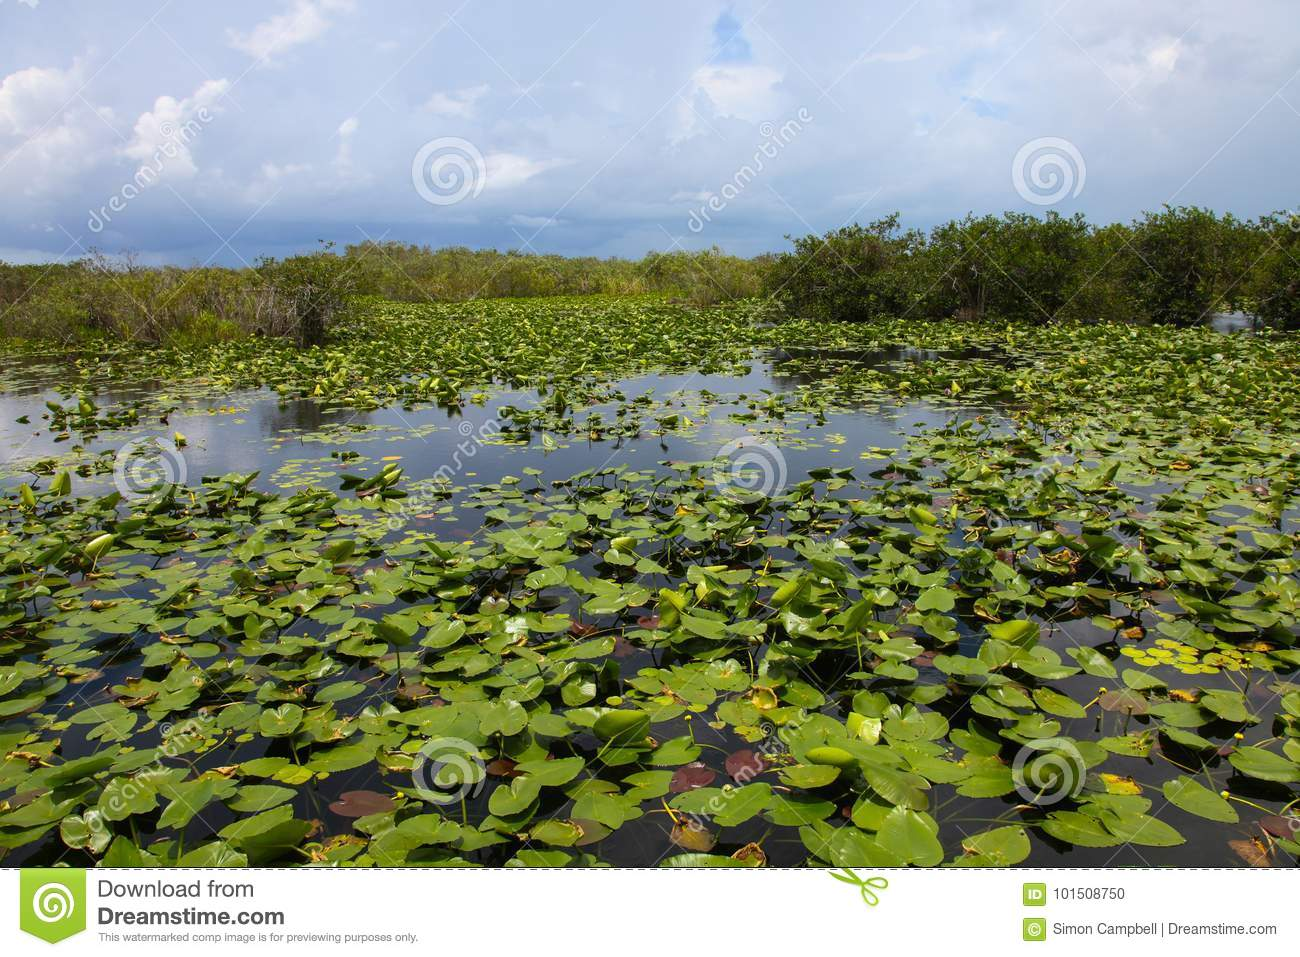 Everglades water Lillies, Florida USA